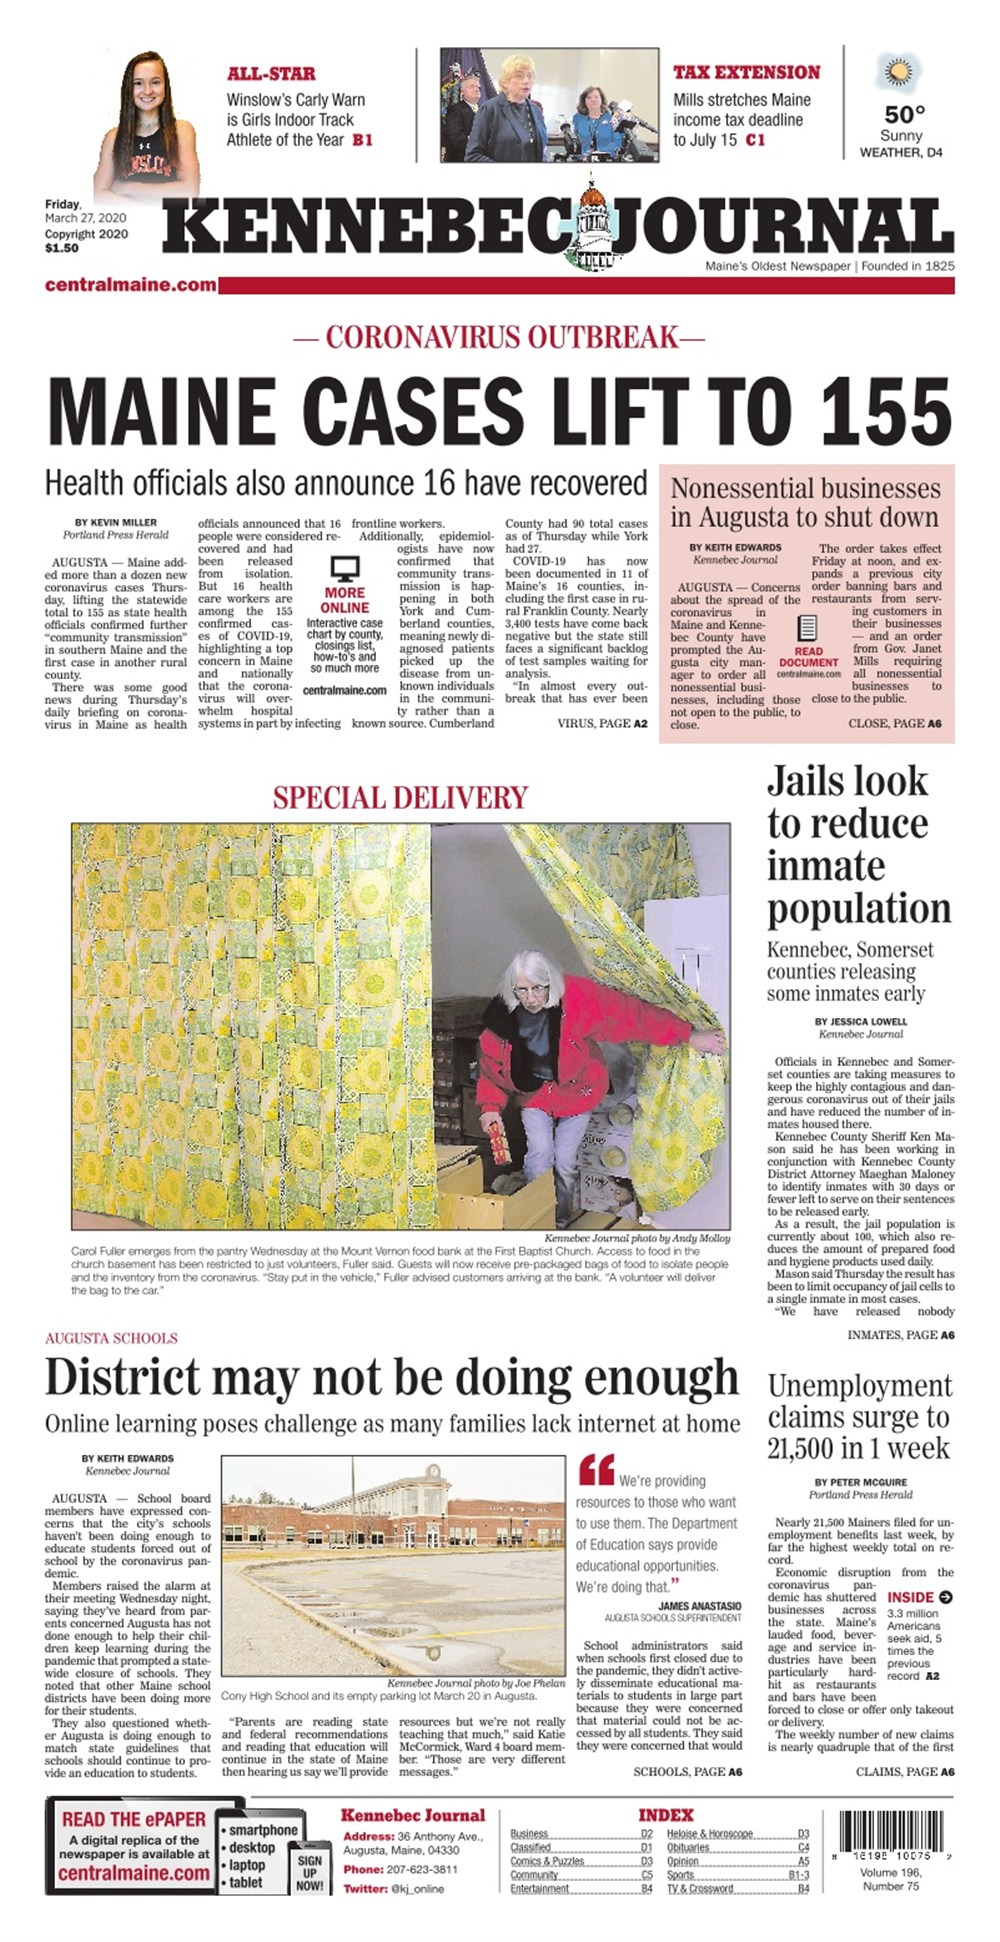 Kennebec Journal On Twitter Today S Kennebec Journal Front Page Friday March 27 2020 Https T Co Ovqieewq2x Https T Co Fgezjh33pw Accurate 12 day weather forecasts for thousands of places around the world. twitter